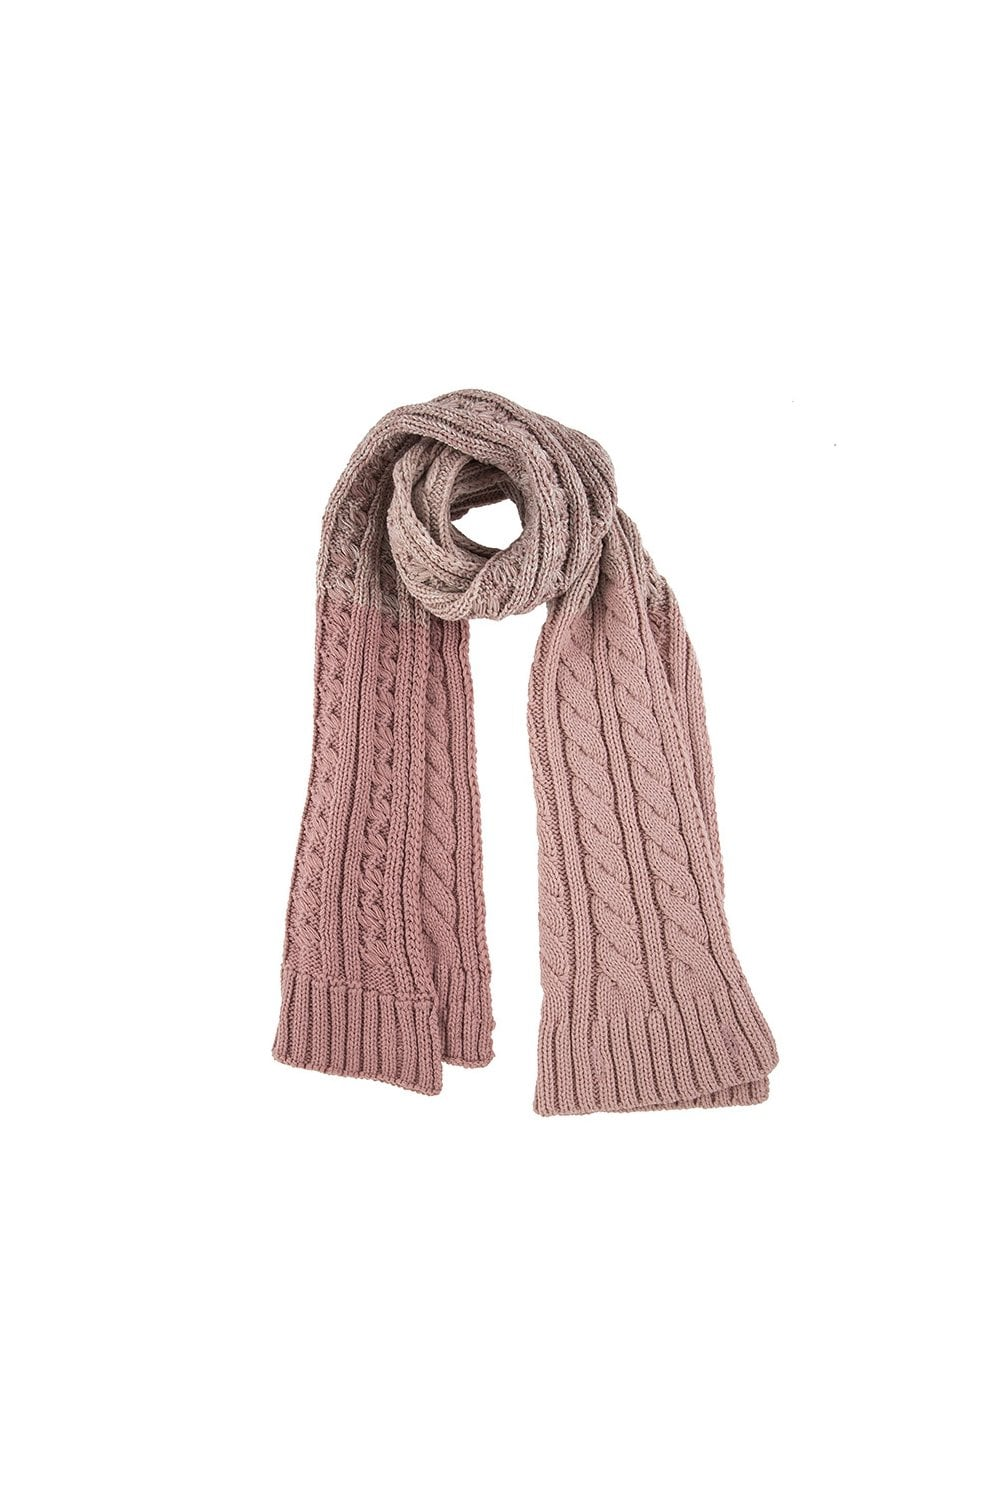 42d54ae32b1f54 Dents Womens Ombre Cable Knit Scarf - Pink - Womenswear from Potters ...